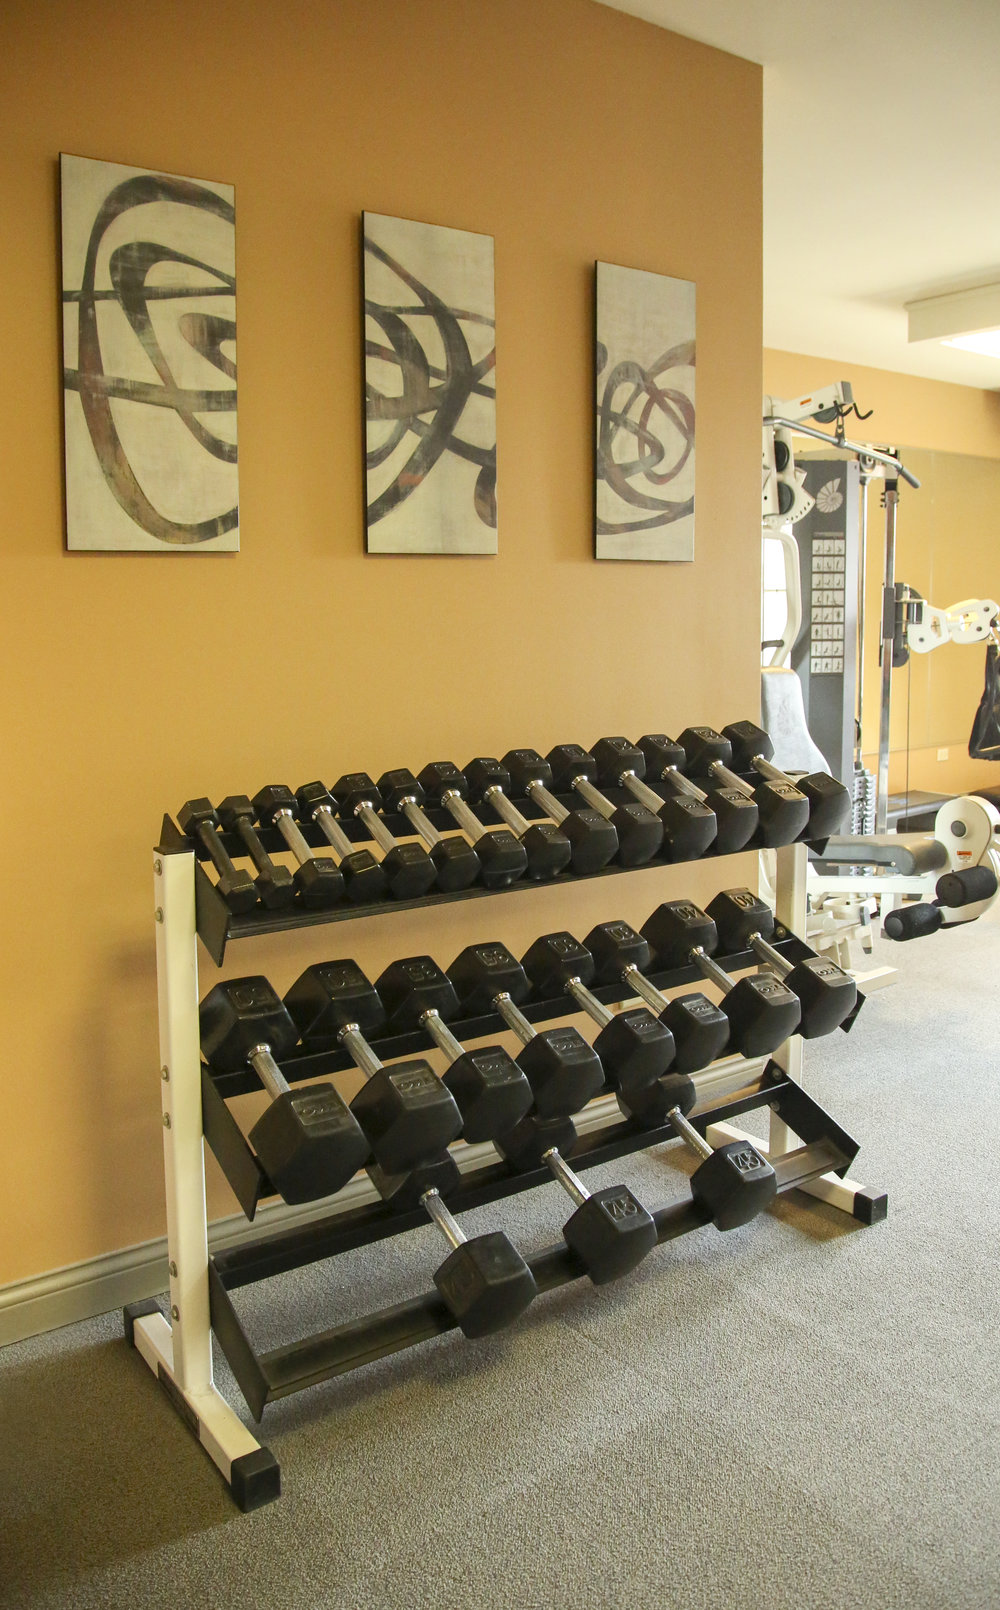 Fitness center with Step Machine, Treadmills, Ellipticals and Free Weights